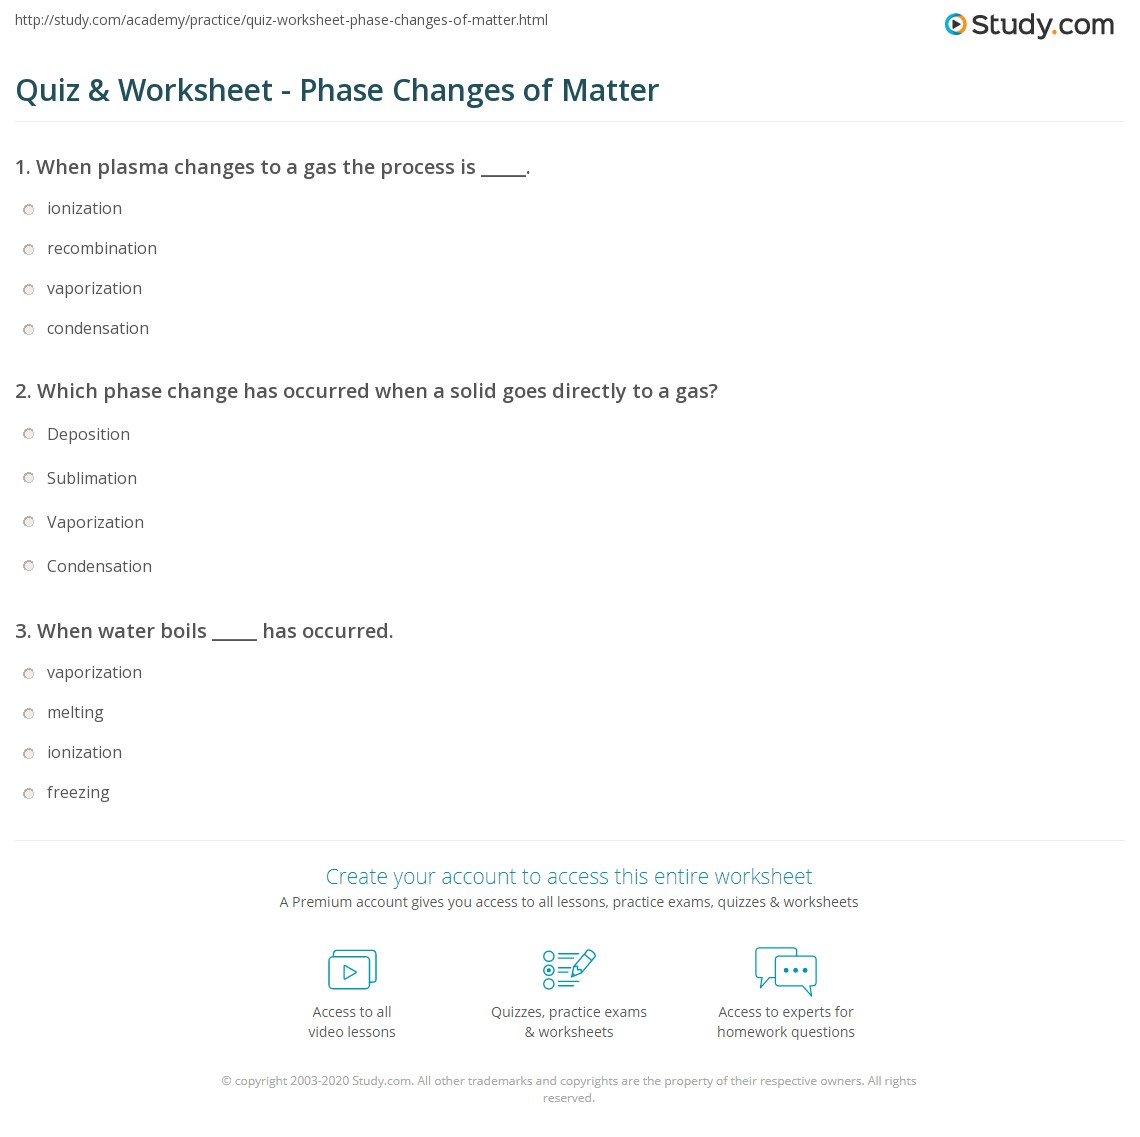 Aldiablosus  Personable Quiz Amp Worksheet  Phase Changes Of Matter  Studycom With Fetching Print Phase Changes Of Matter Types Amp Examples Worksheet With Charming Fun Nd Grade Math Worksheets Also Weather Worksheets First Grade In Addition Th Grade Math Test Prep Worksheets And Find The Area Worksheet As Well As Th Grade Printable Math Worksheets Additionally The Giver Vocabulary Worksheets From Studycom With Aldiablosus  Fetching Quiz Amp Worksheet  Phase Changes Of Matter  Studycom With Charming Print Phase Changes Of Matter Types Amp Examples Worksheet And Personable Fun Nd Grade Math Worksheets Also Weather Worksheets First Grade In Addition Th Grade Math Test Prep Worksheets From Studycom